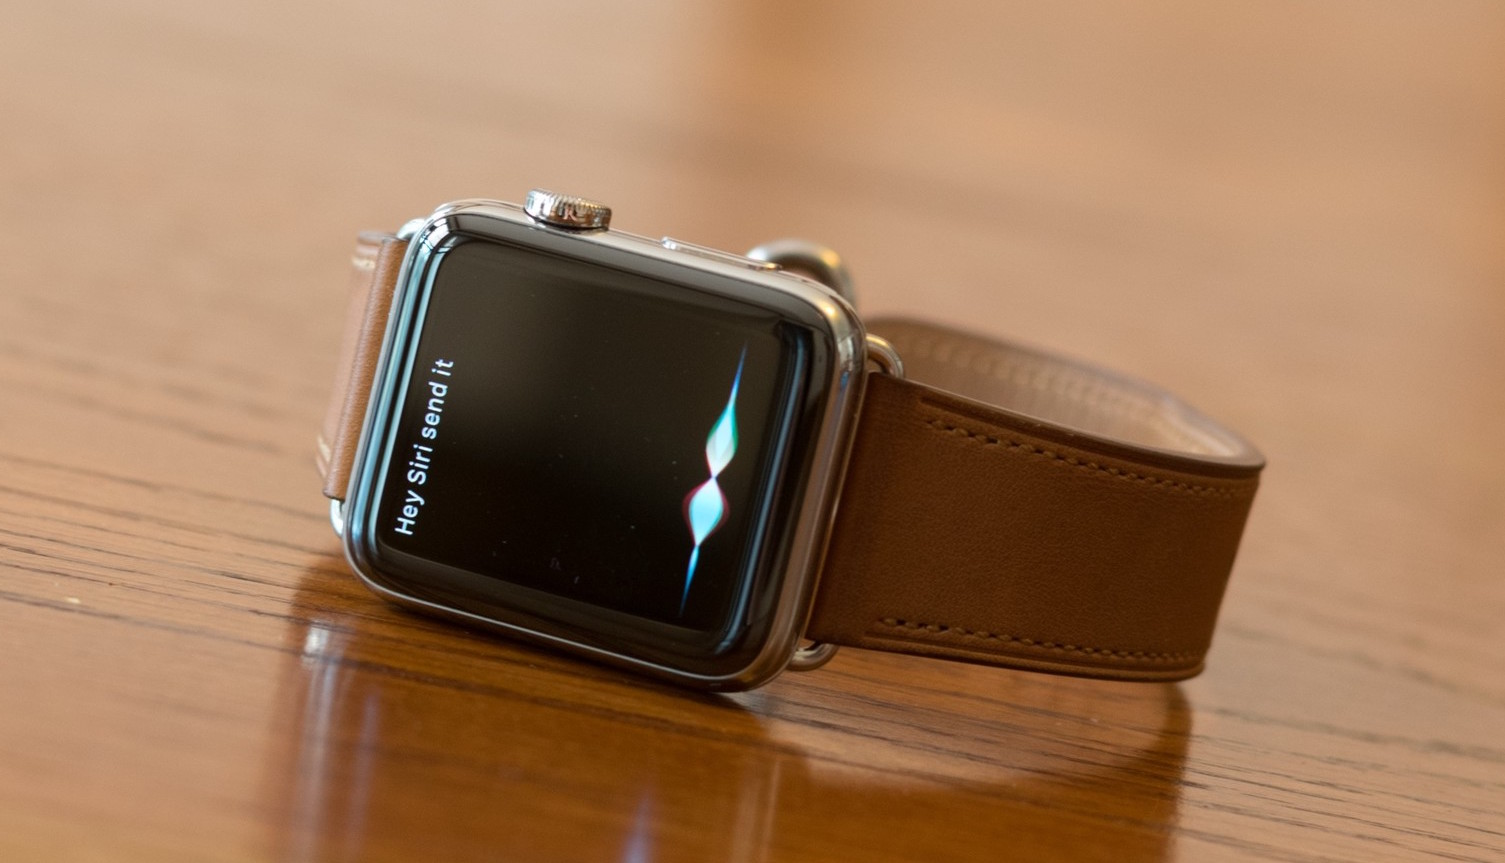 watch OS 3.2 will receive a long-awaited feature